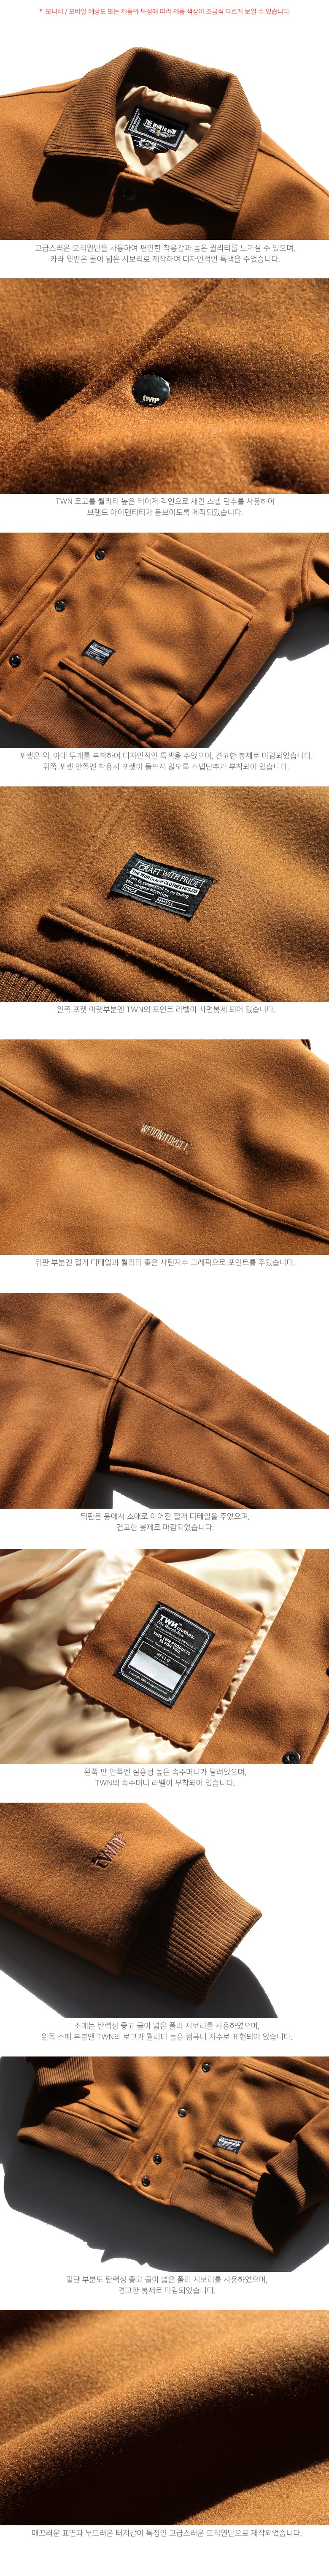 20190121_twn_tailor_detail_brown_je_02.jpg